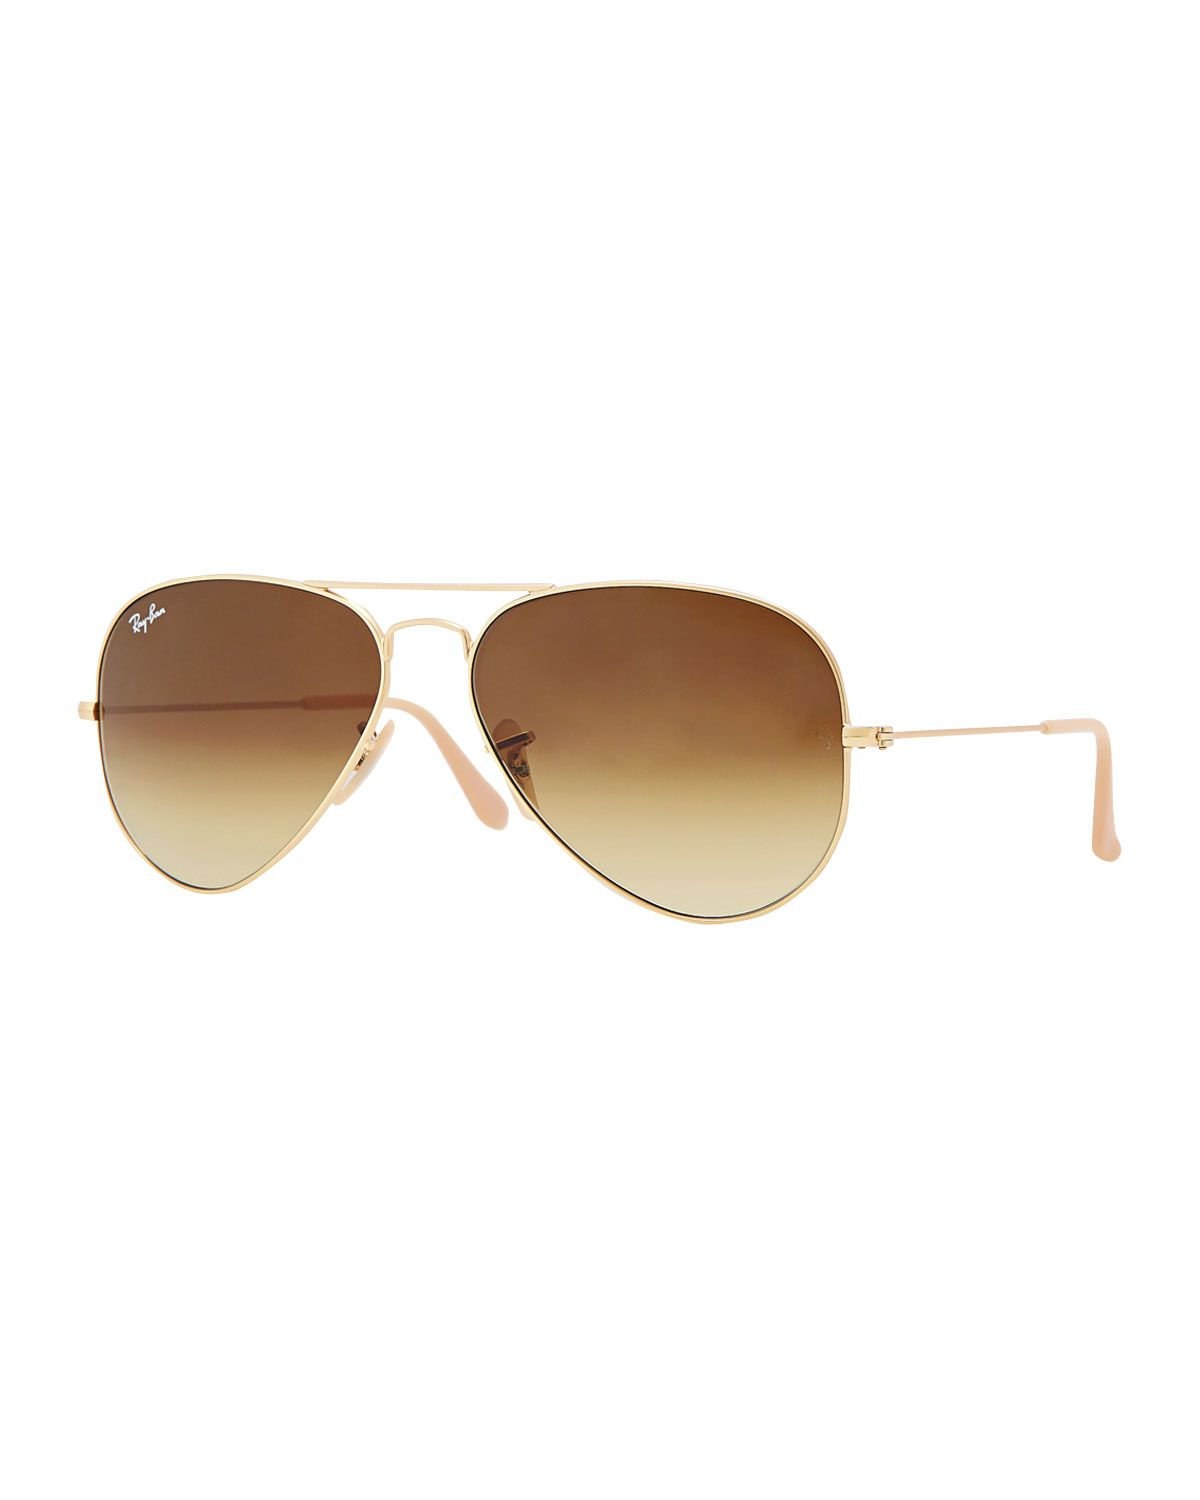 Gradient Aviator Sunglasses, Golden/Blue, Size: 62MM, Gold/Blue - Ray-Ban | *Clothing Accessories \u0026gt; Sunglasses* | Pinterest | Ray ban sunglasses outlet, ...